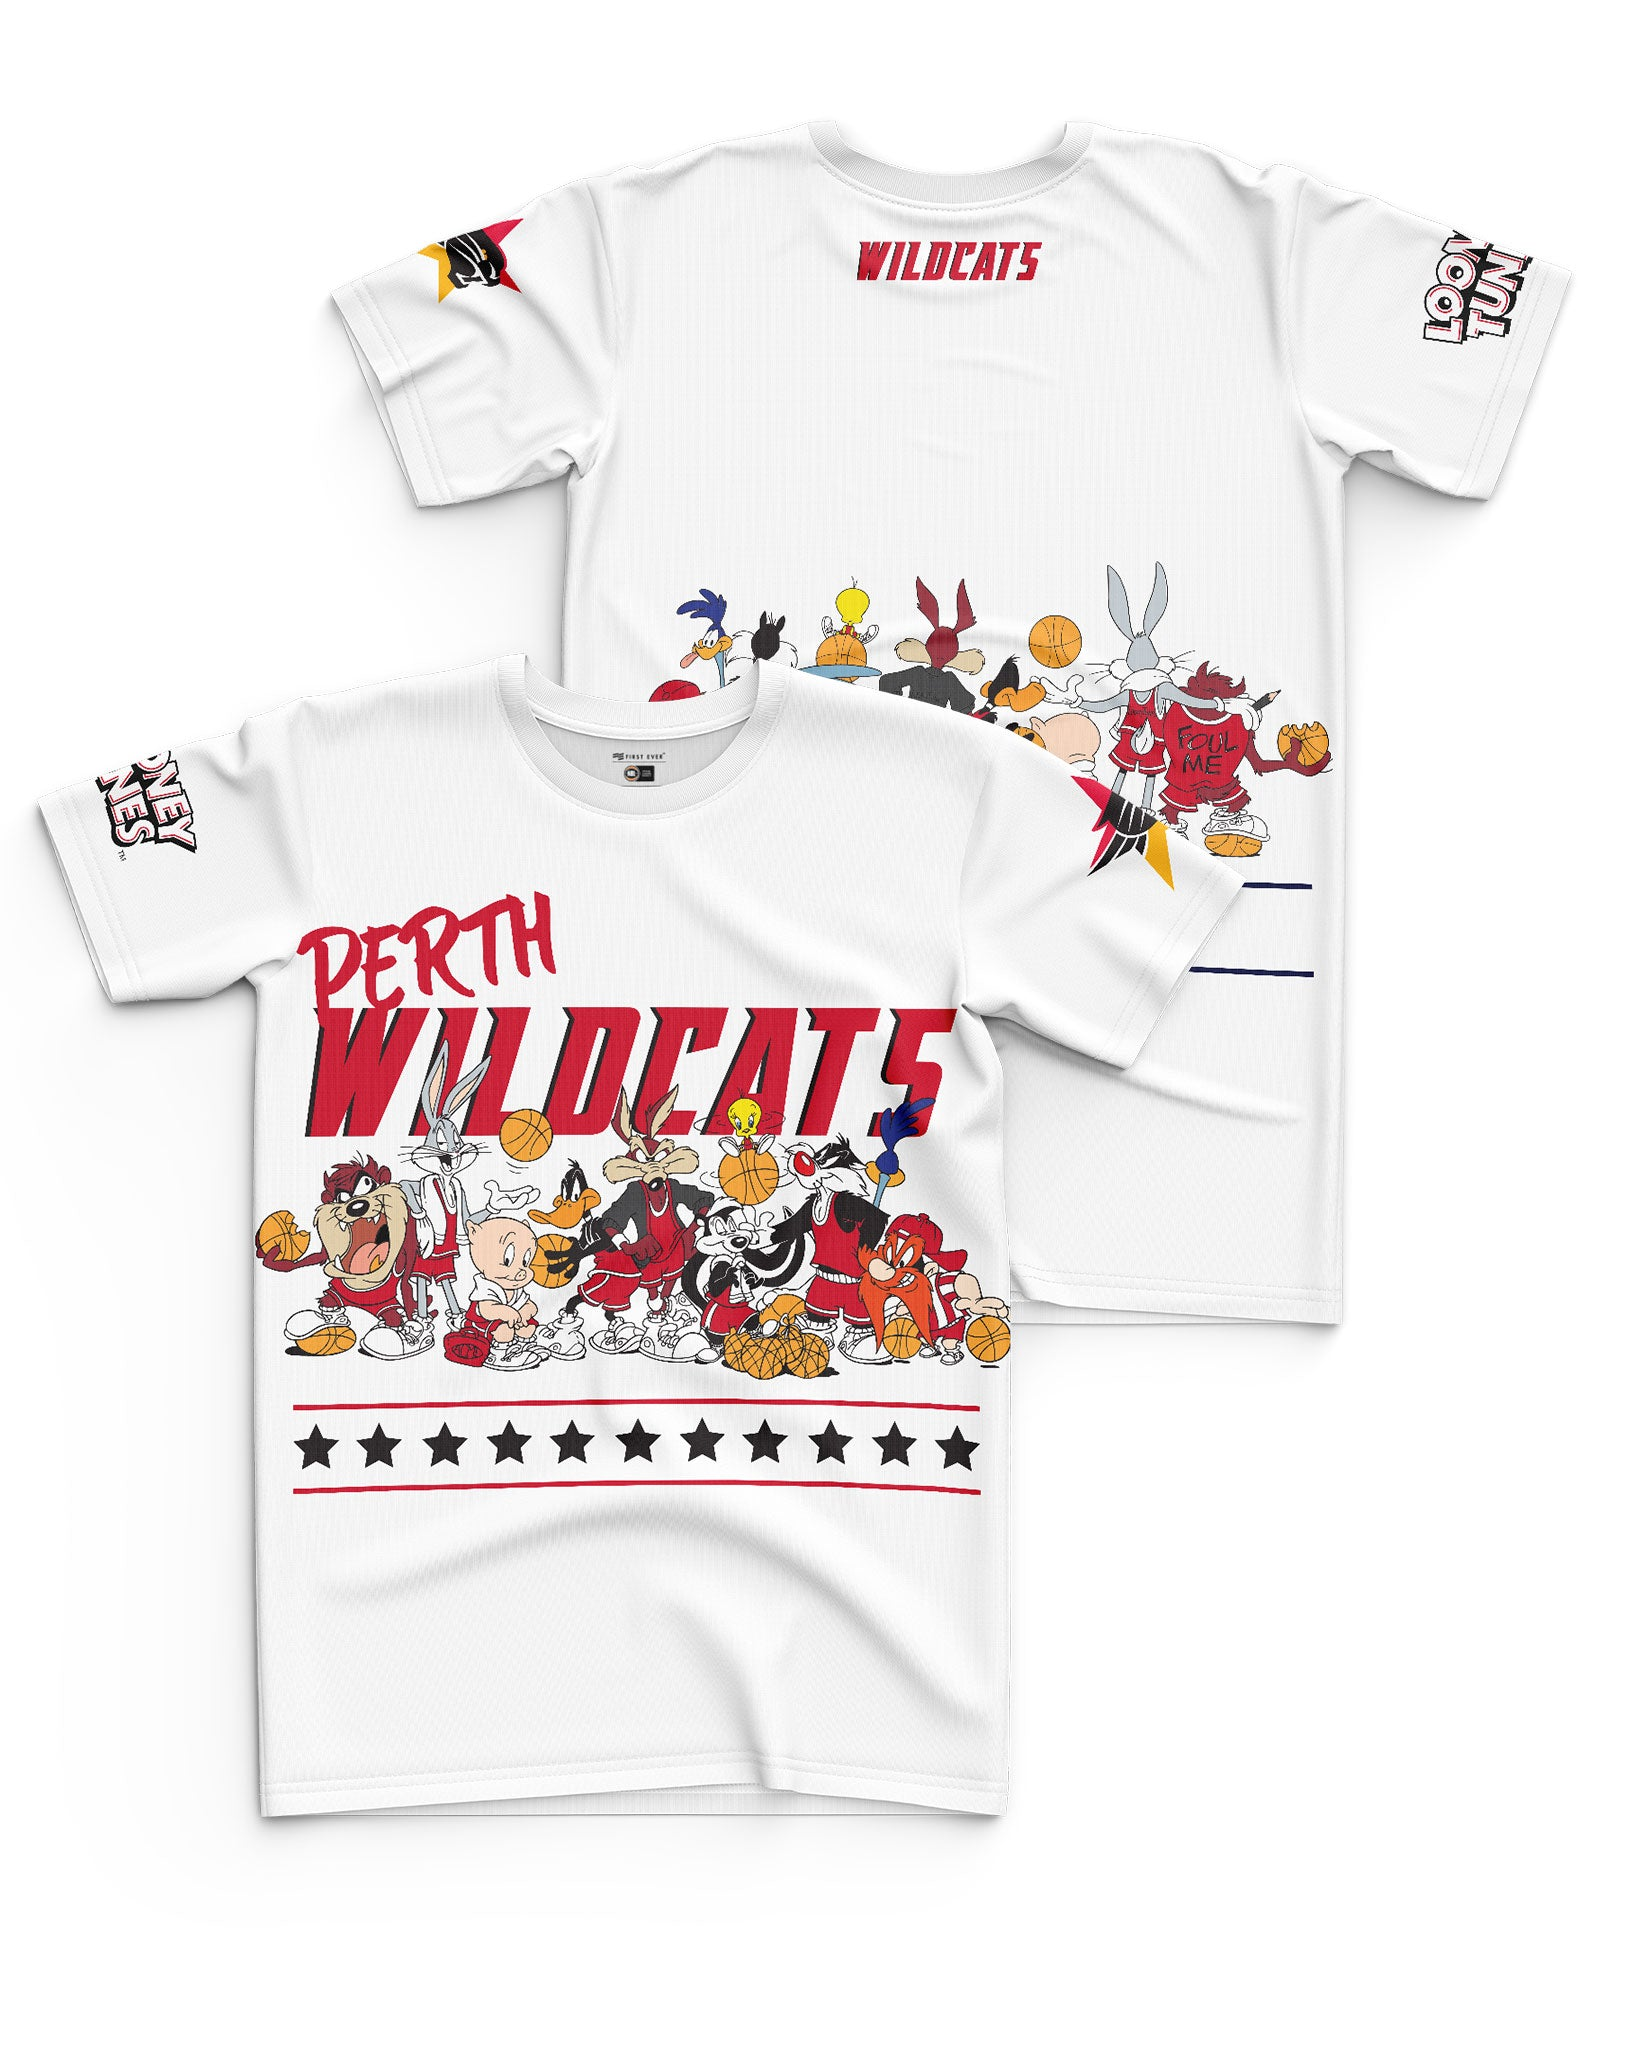 Perth Wildcats 20/21 Looney Tunes Youth Squad Tee - Personalised